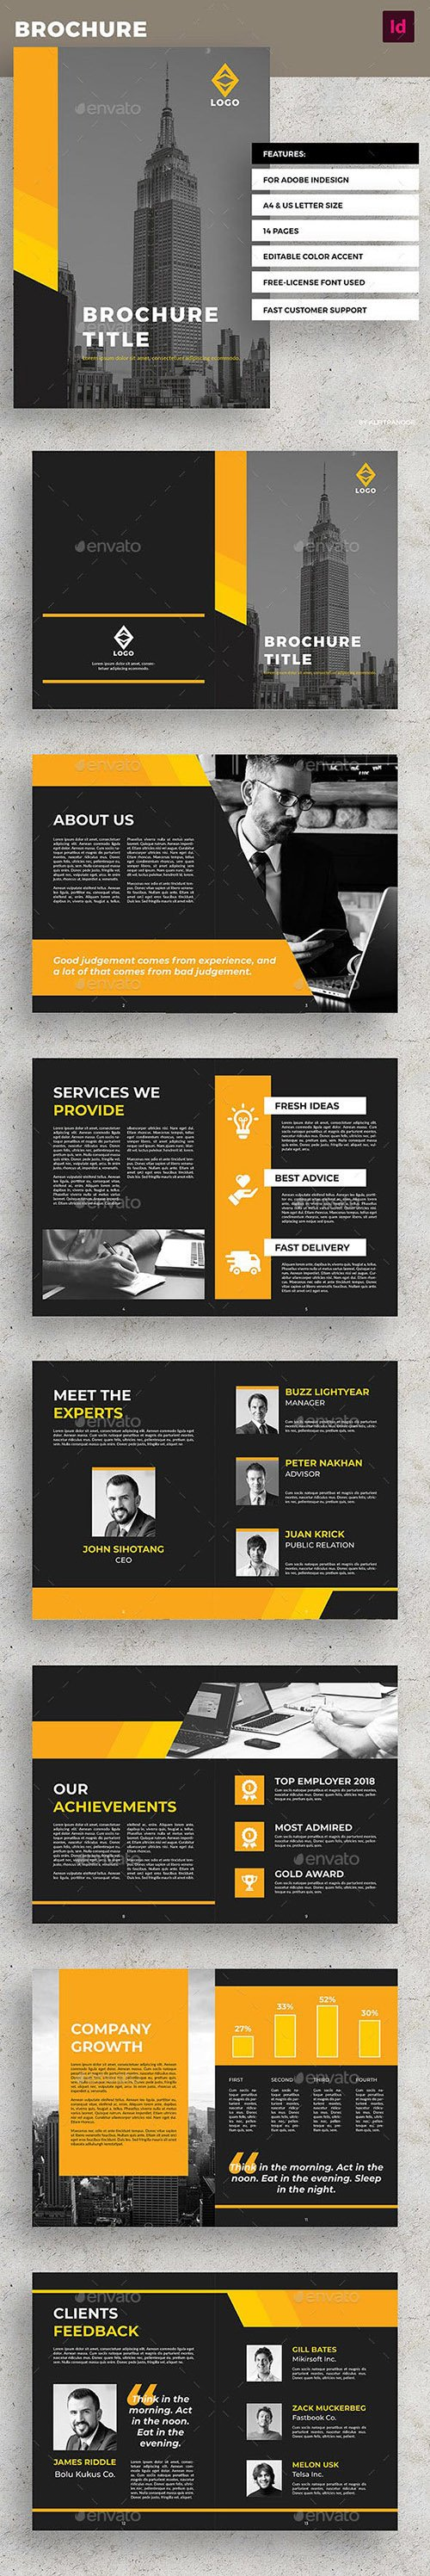 GR - Yellow Business Brochure 22313937